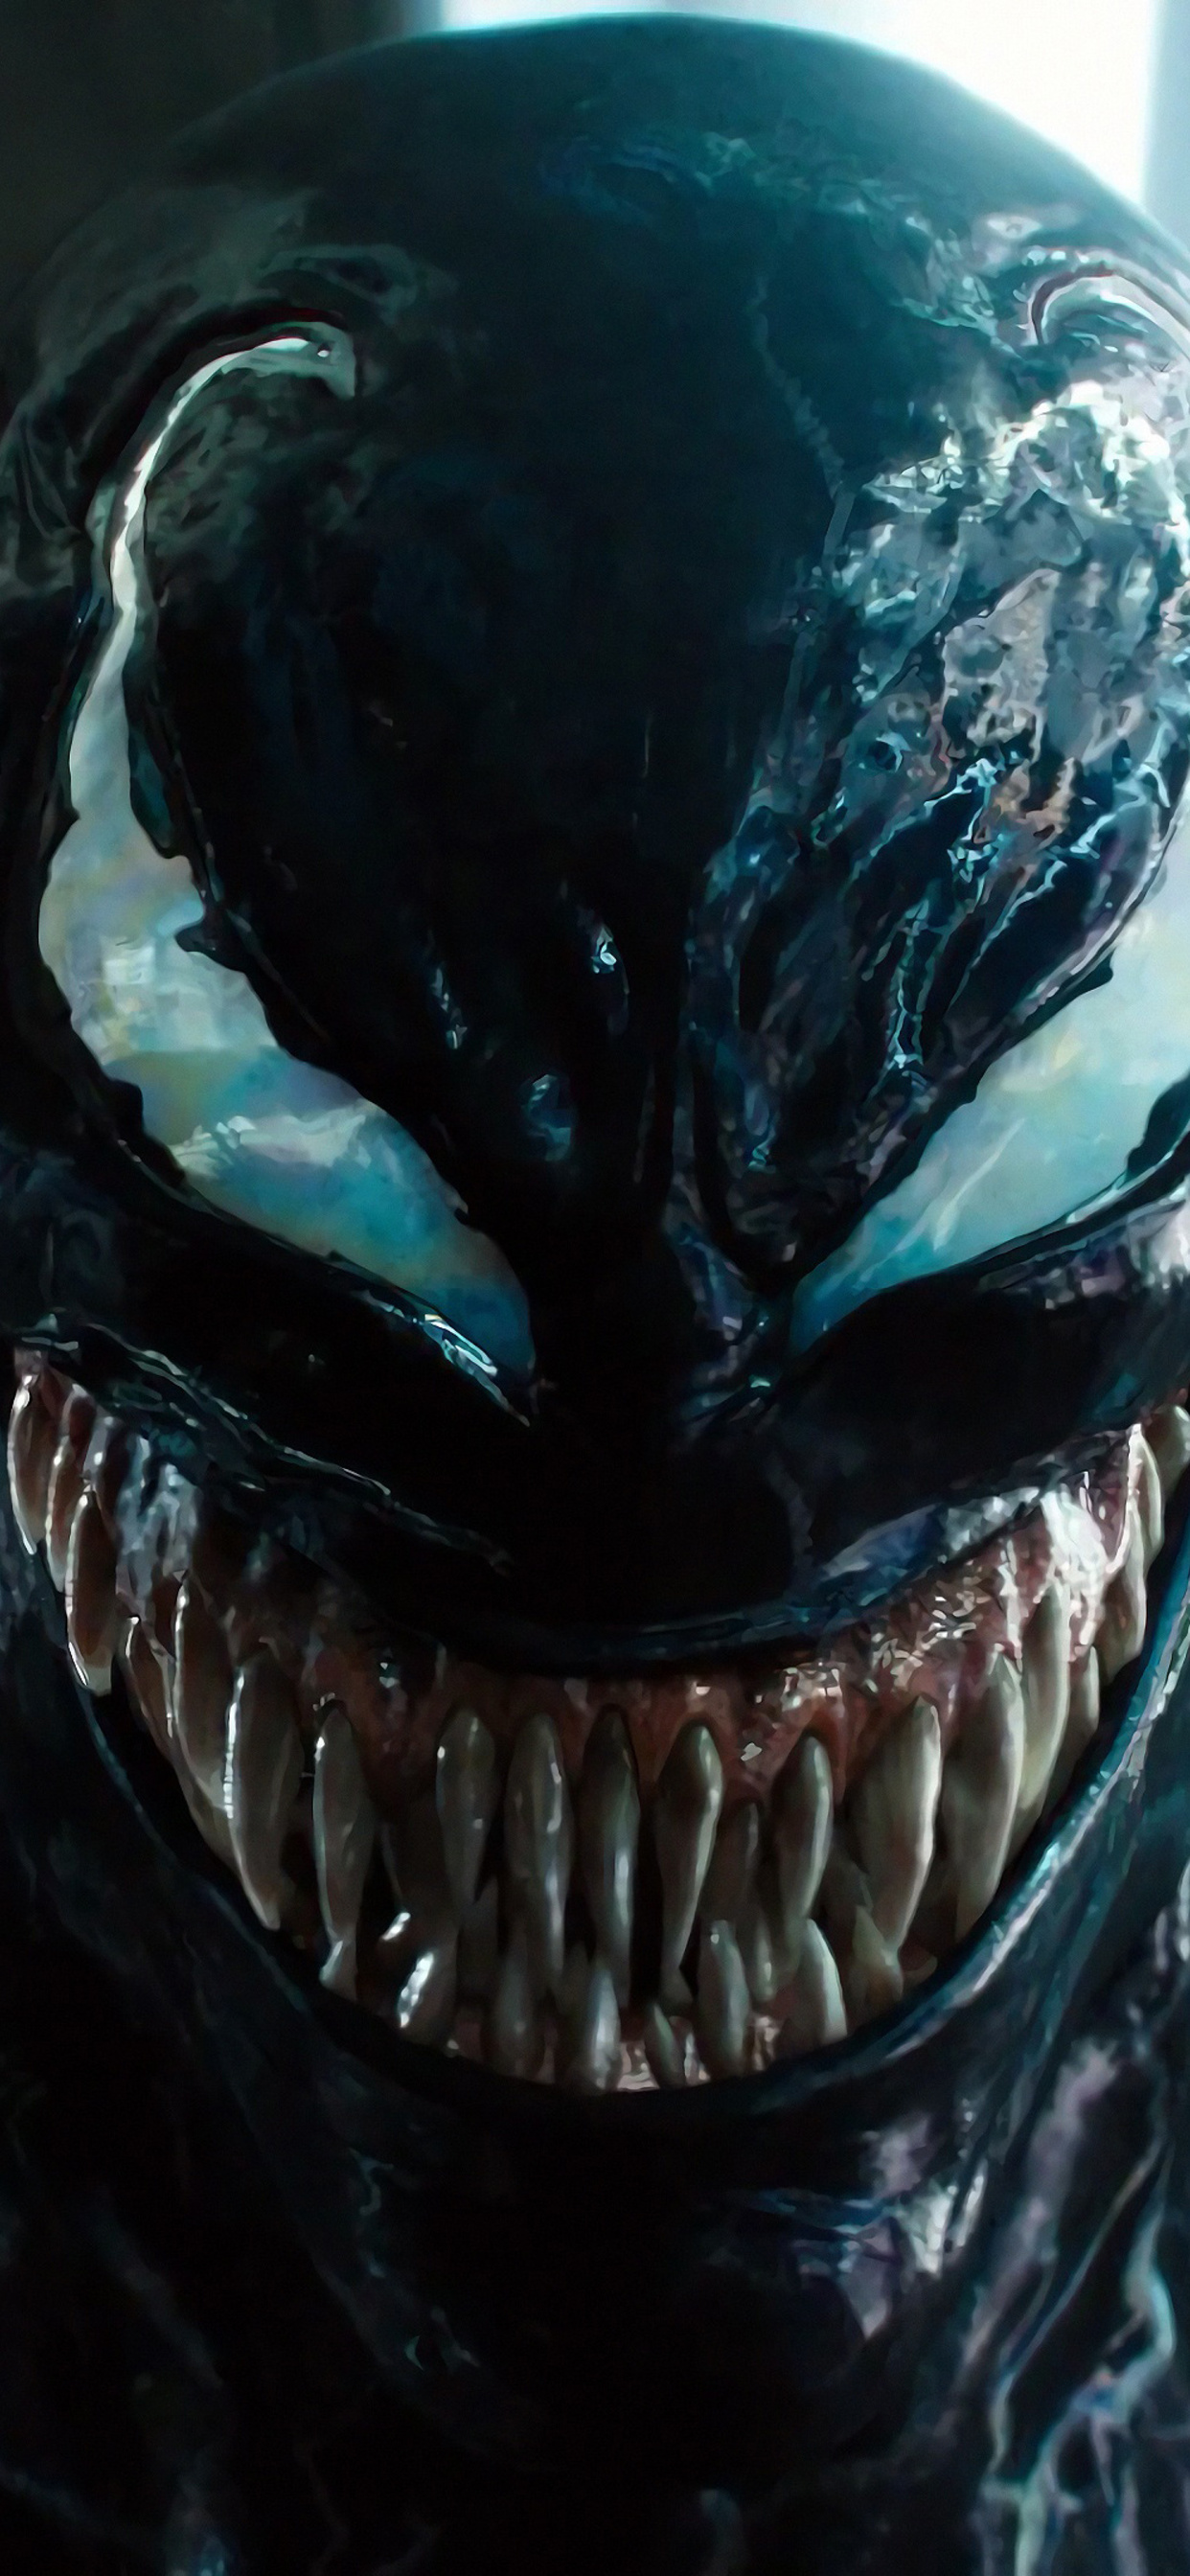 1242x2688 Venom 2018 Movie 4k Iphone Xs Max Hd 4k Wallpapers Images